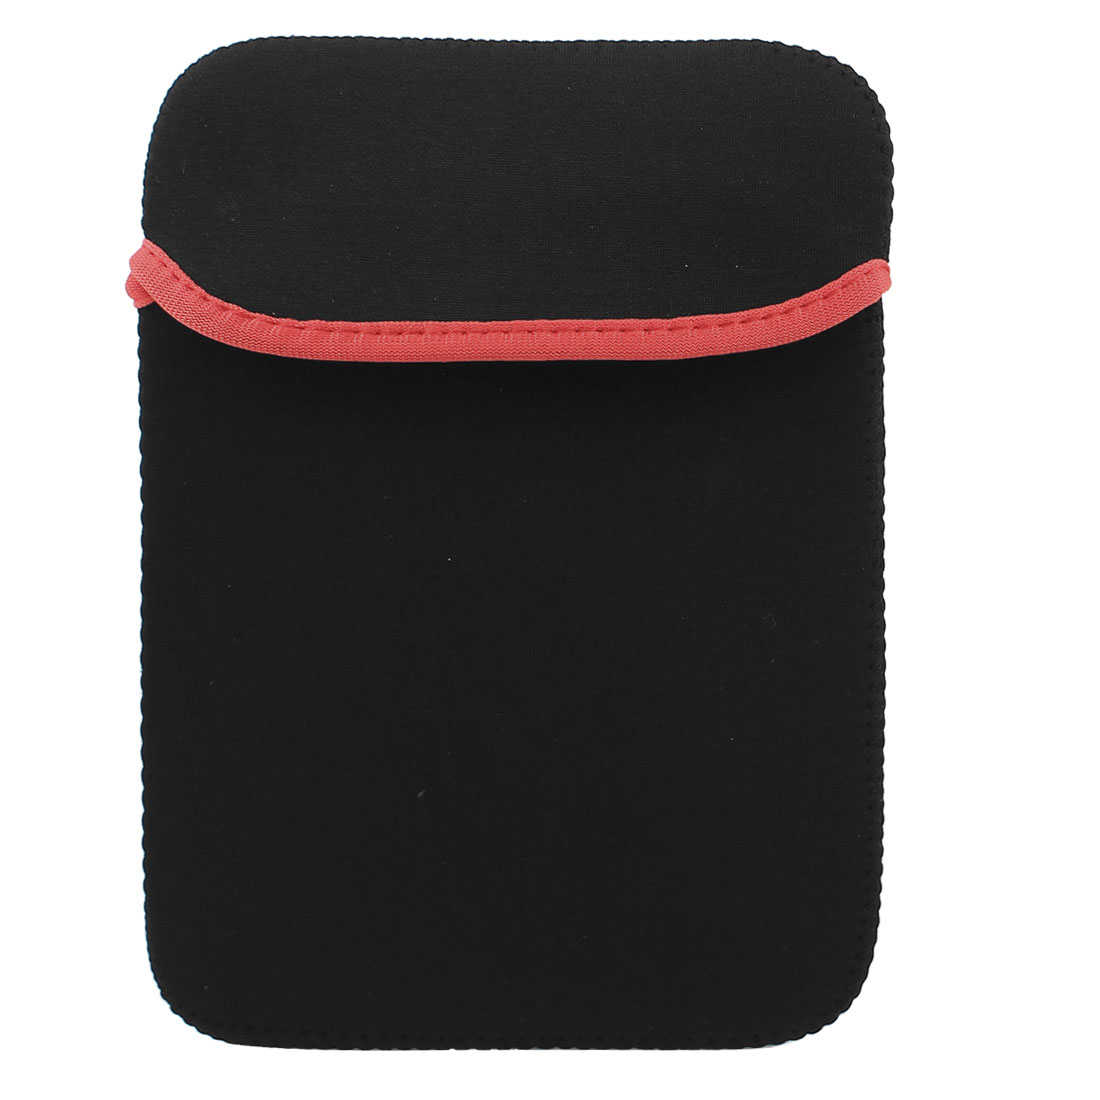 "14"" Soft Neoprene PC Laptop Tablet Netbook Sleeve Case Bag Cover Pouch Black Red"